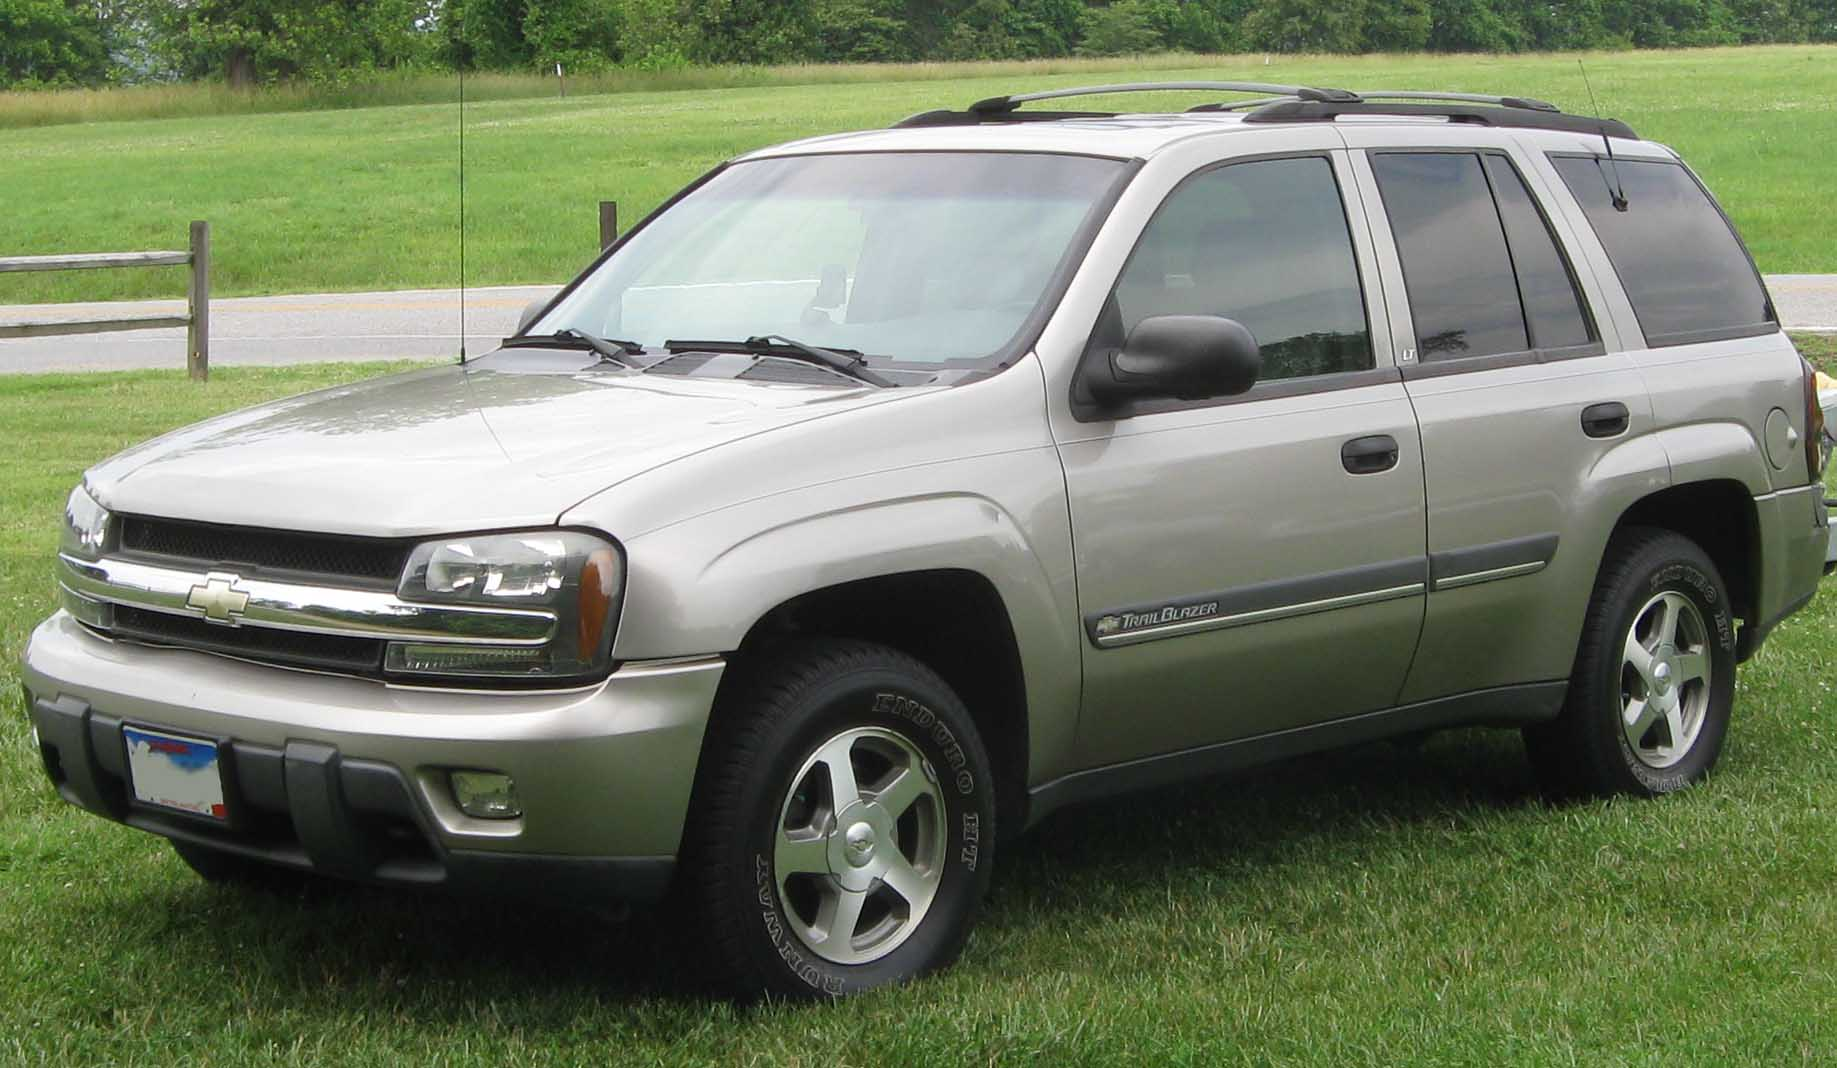 Chevrolet Trailblazer Wikipedia 2002 Chevy 4x4 Wiring Schematic